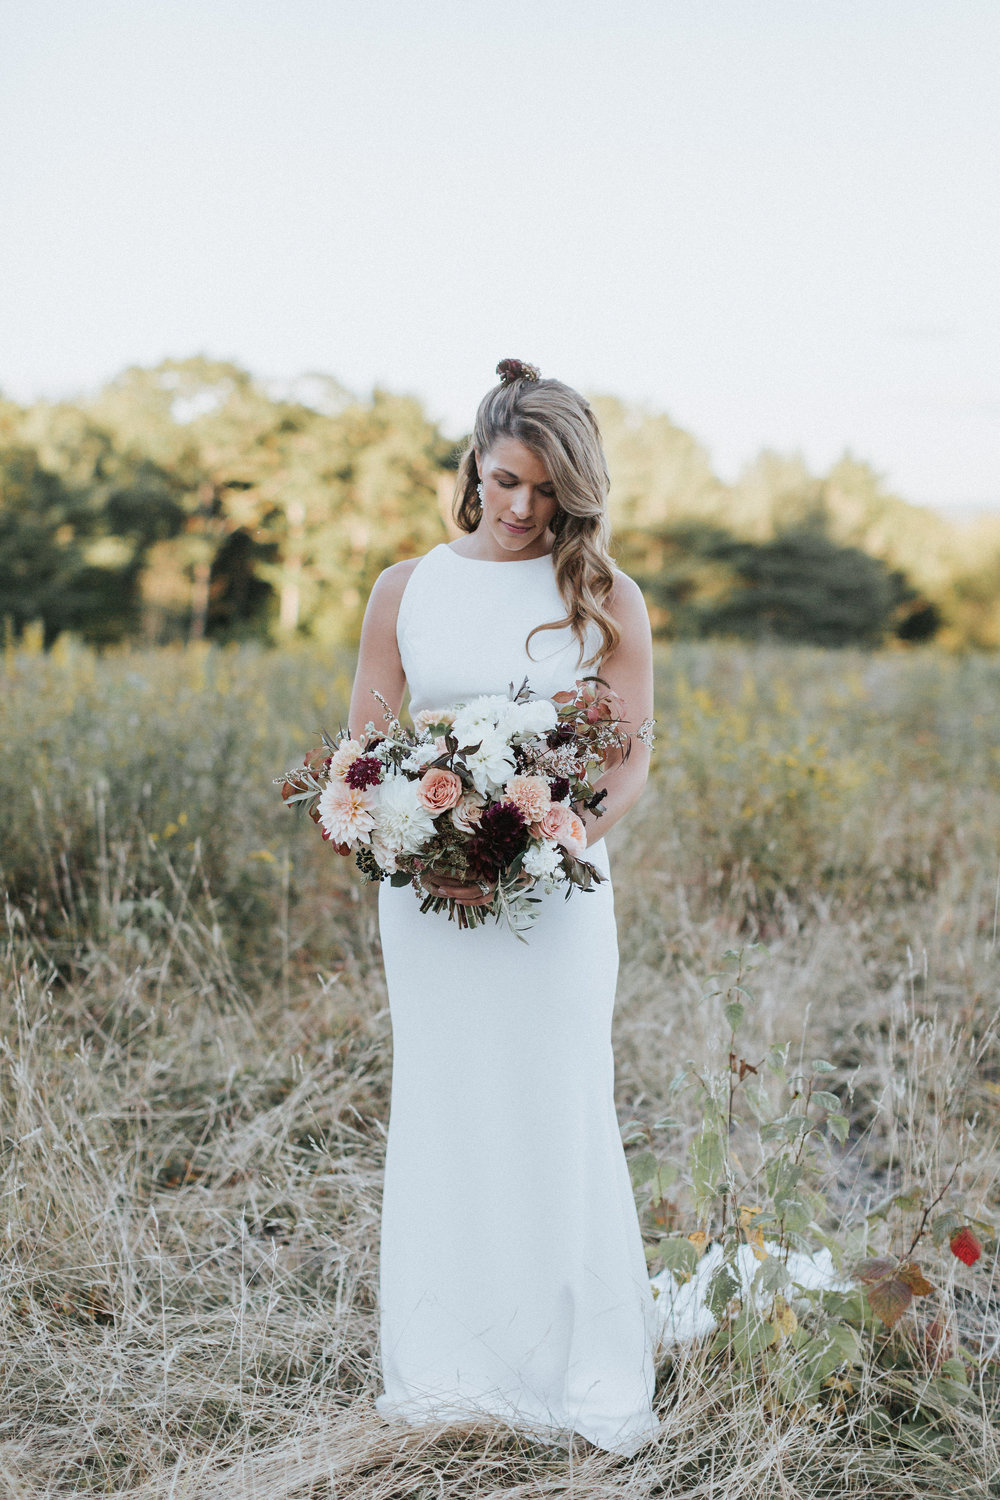 Allie_Greg_Beech_Hill_Barn_Wedding_Portraits-346.jpg